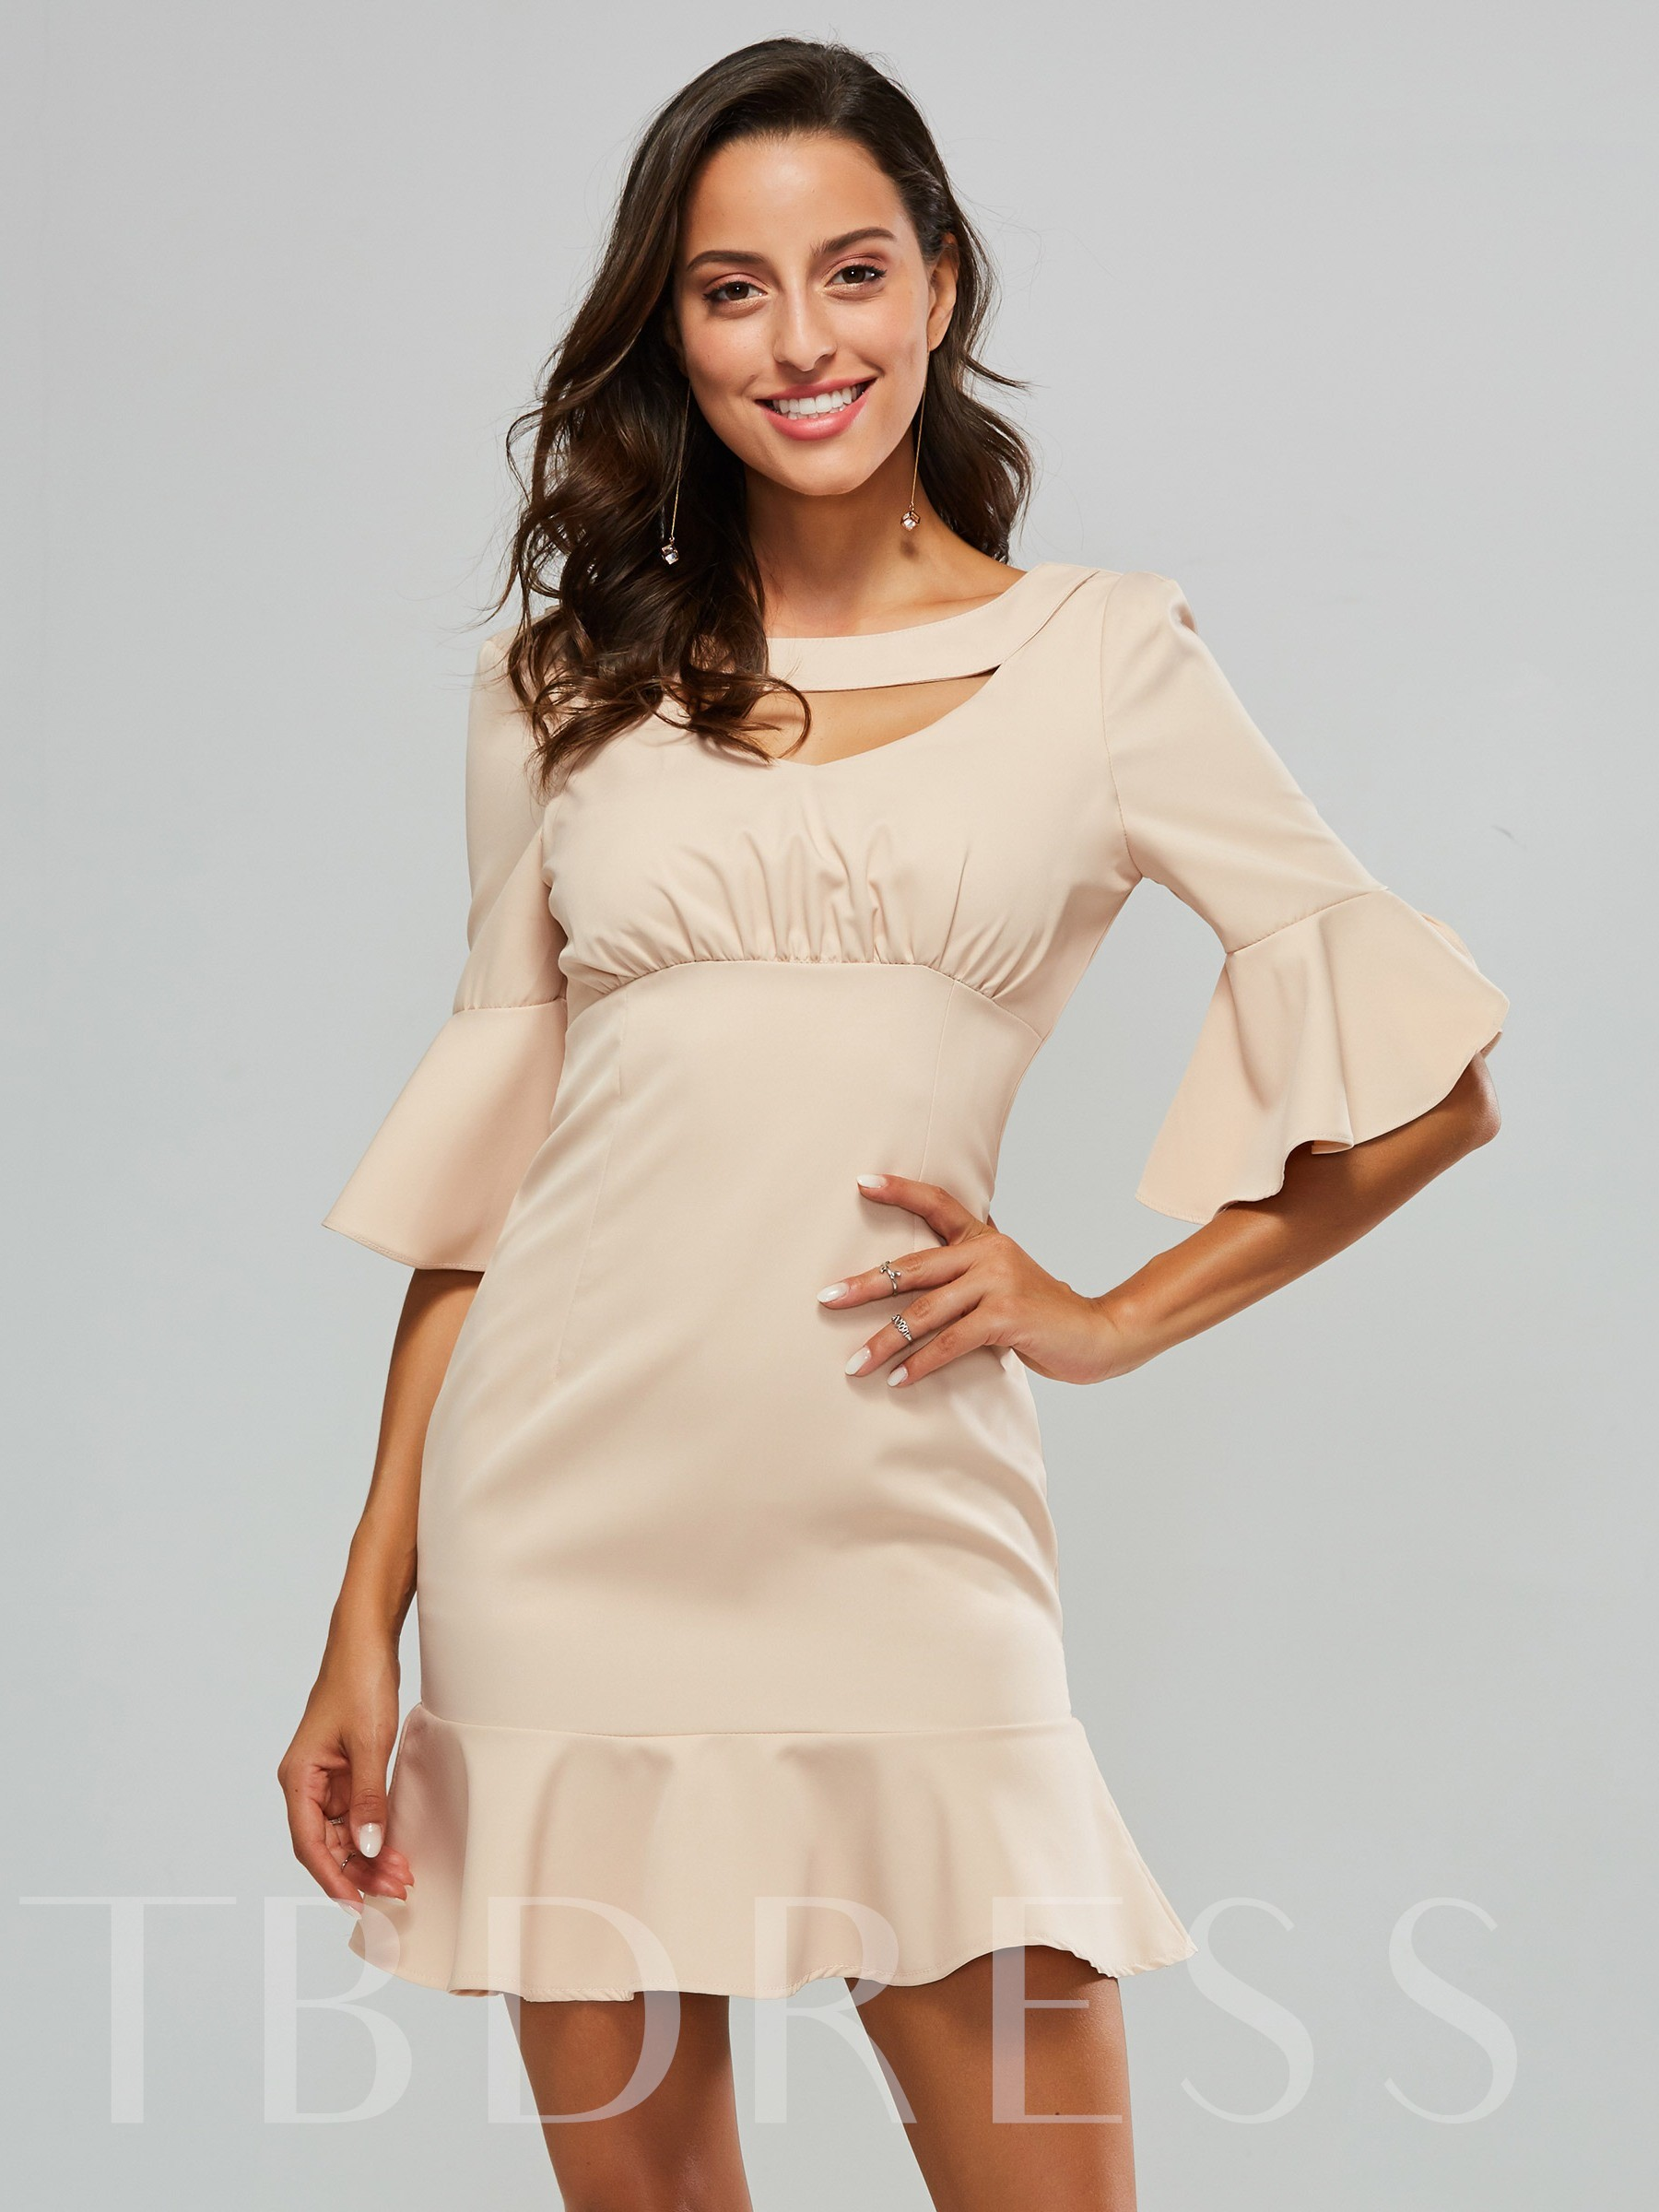 Buy Bell Sleeve Women's Pink Bodycon Dress, Spring,Summer,Fall, 13325312 for $21.11 in TBDress store